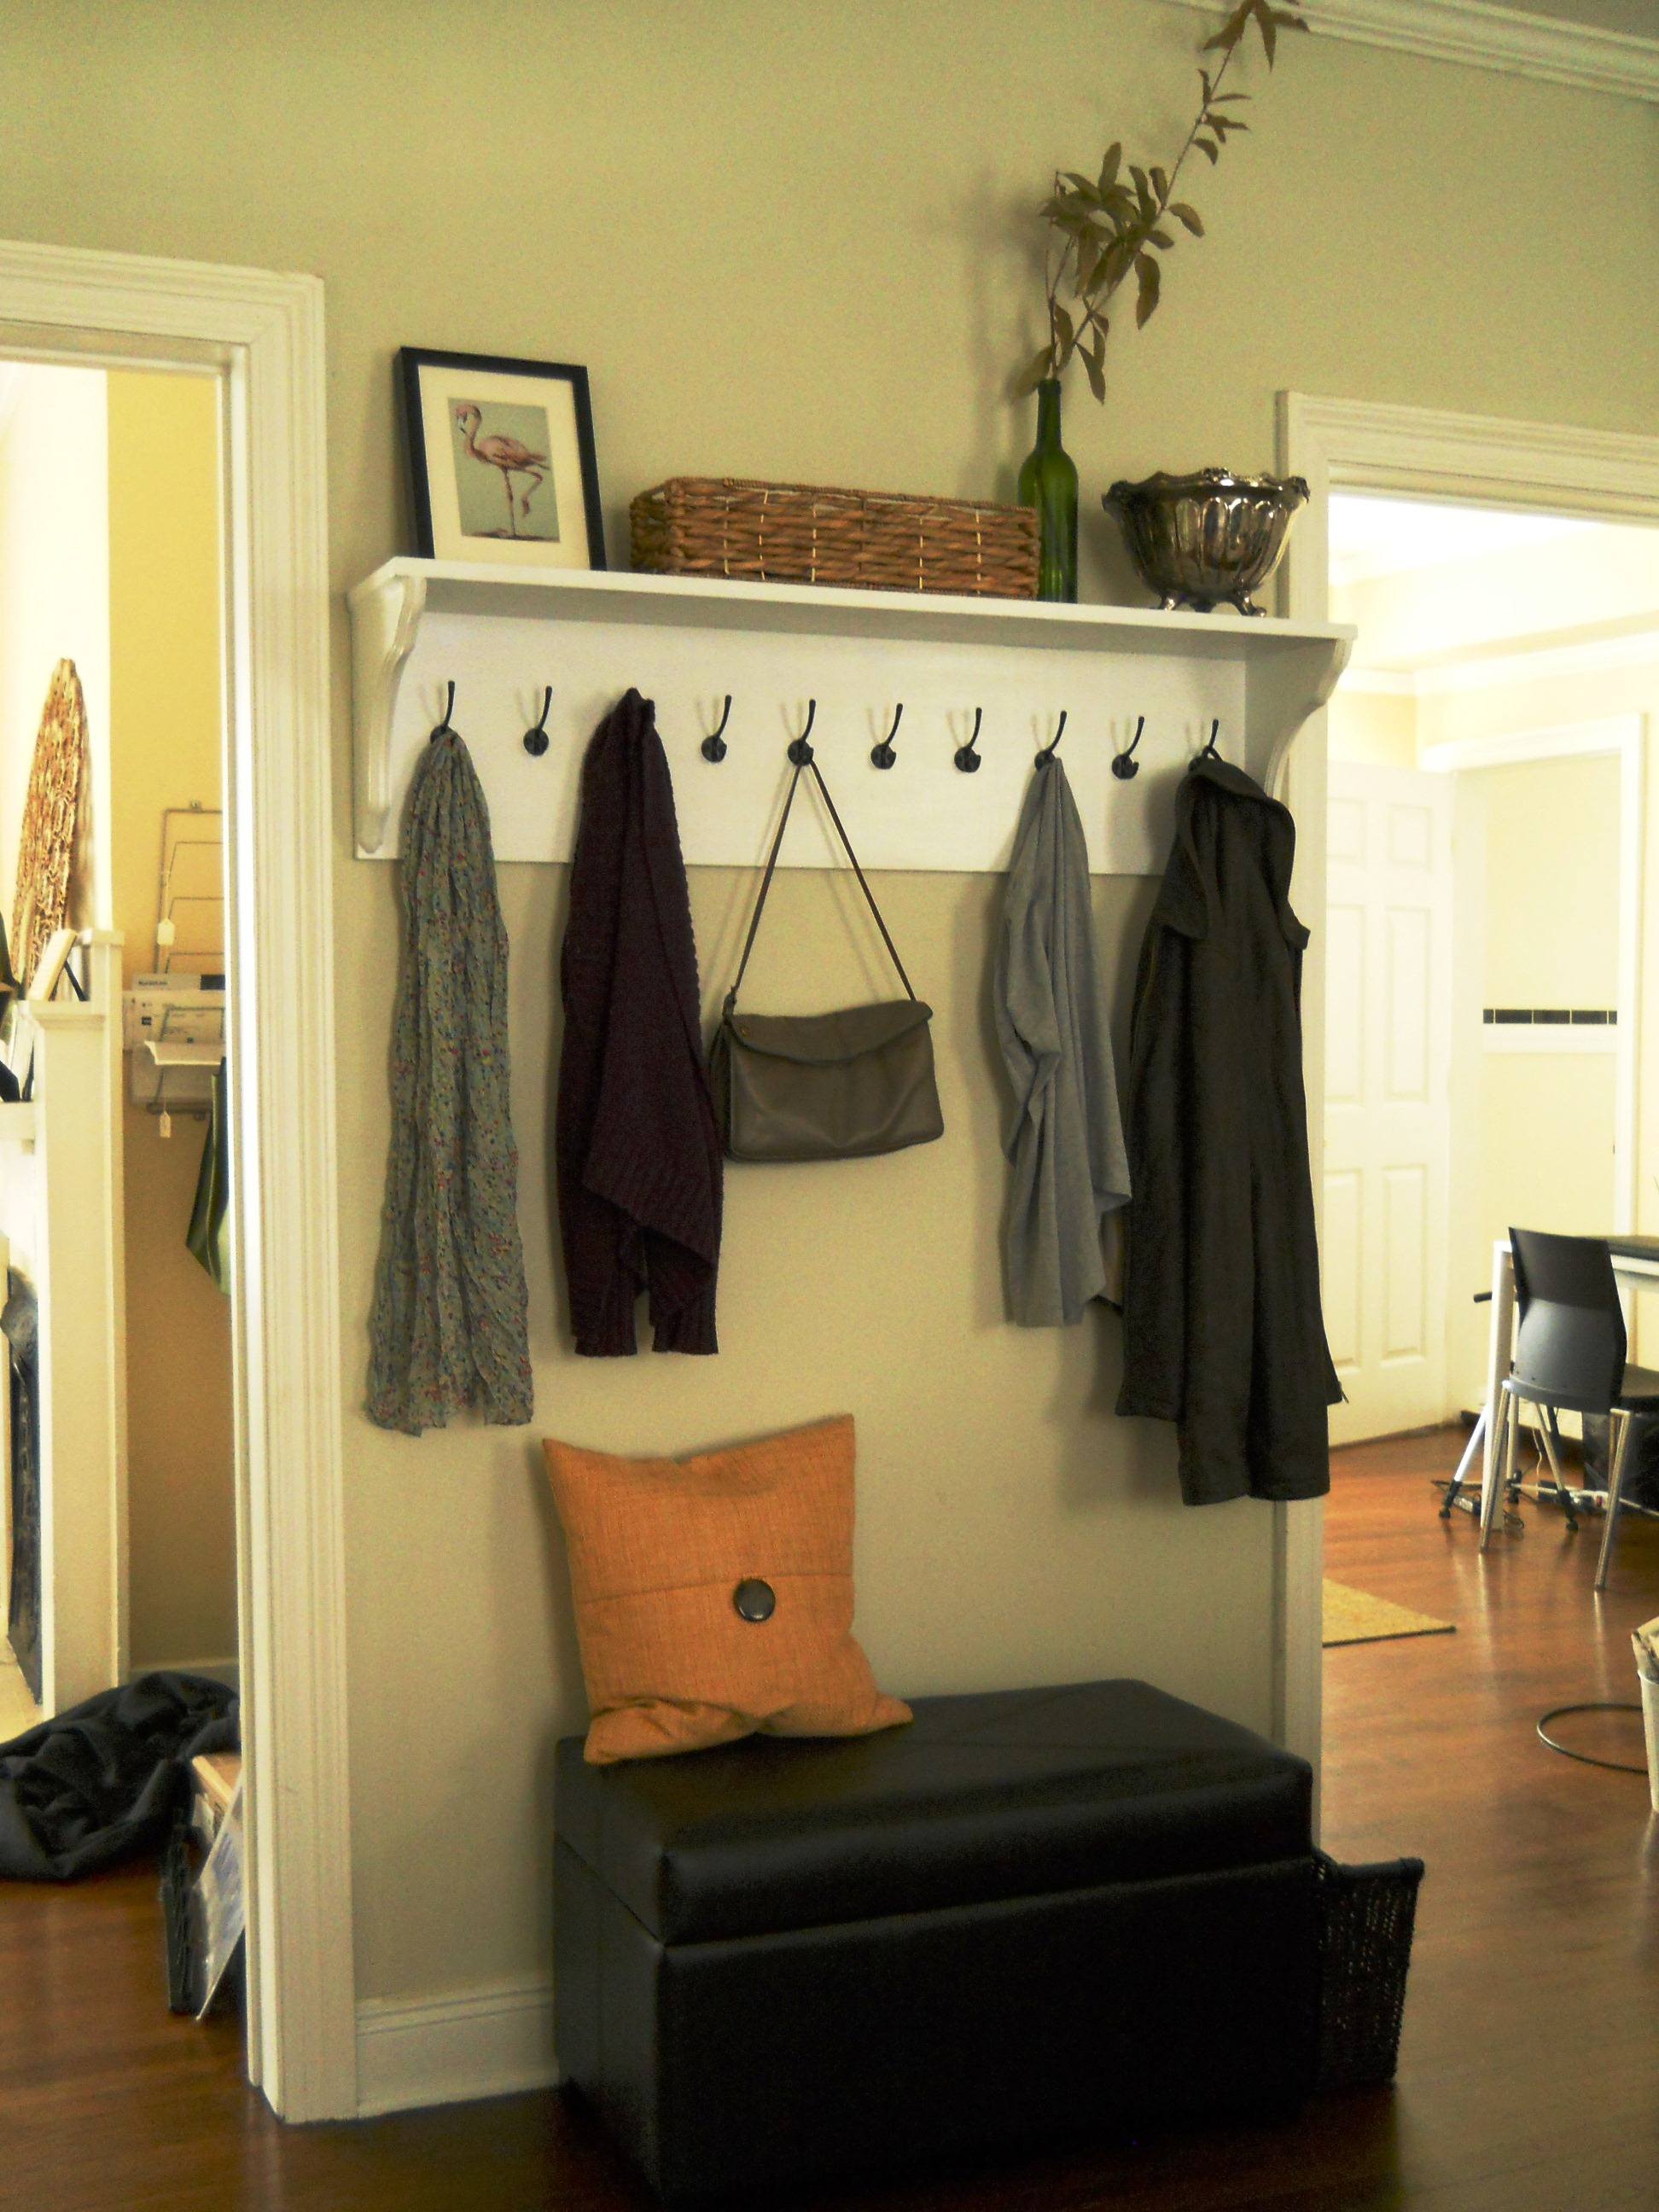 Entryway shelf hooks living well on the cheap - Living room with front entry ...